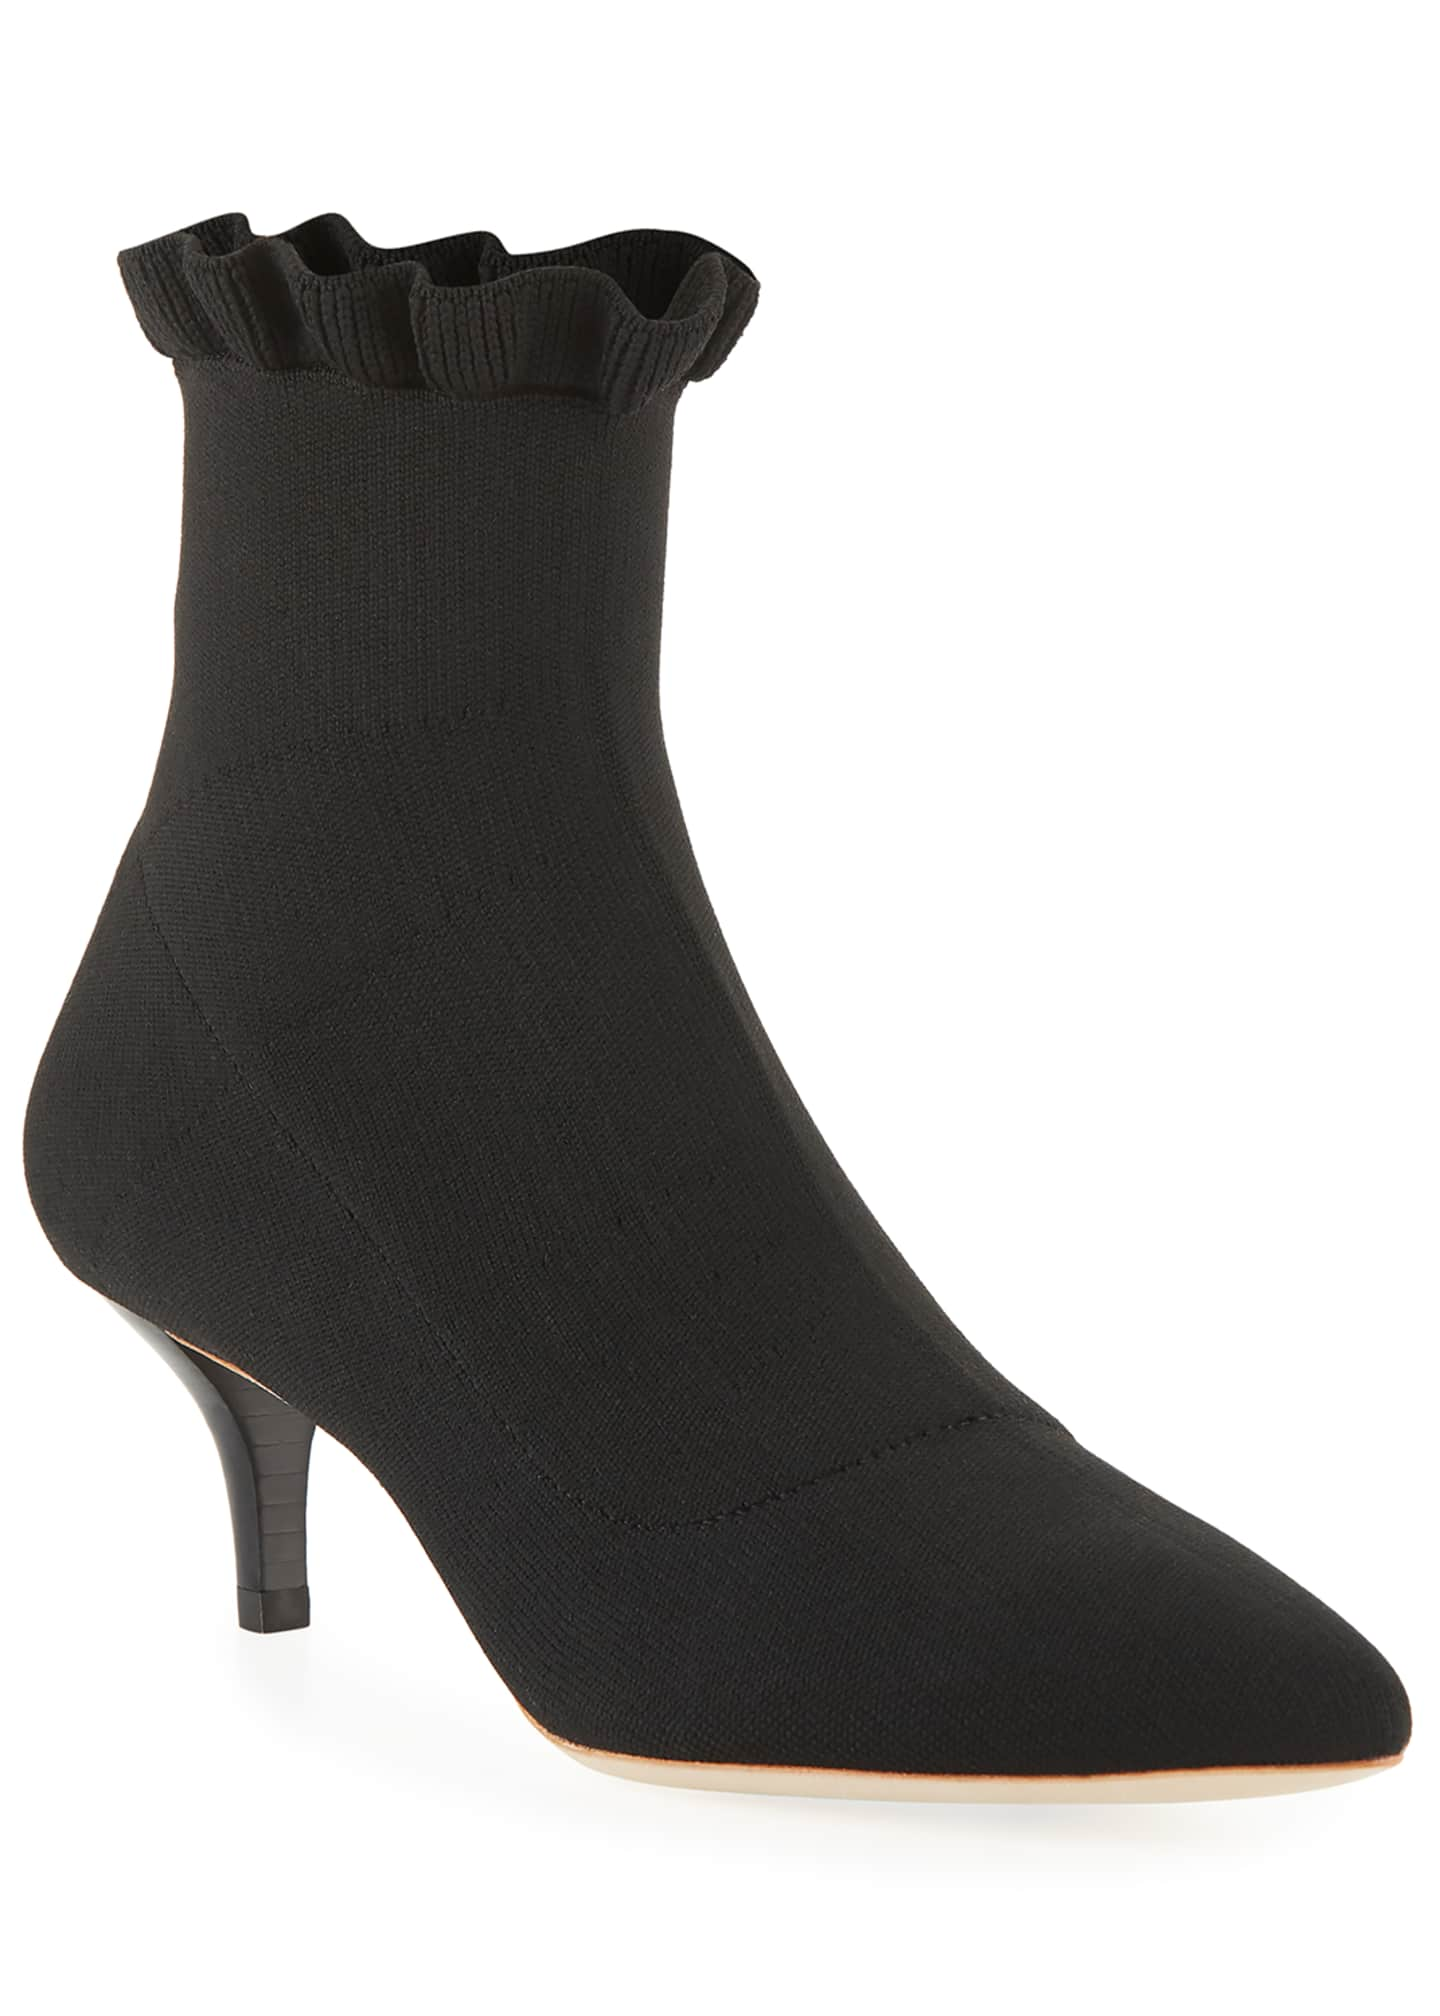 Loeffler Randall Kassidy Ruffled Stretch Knit Sock Booties